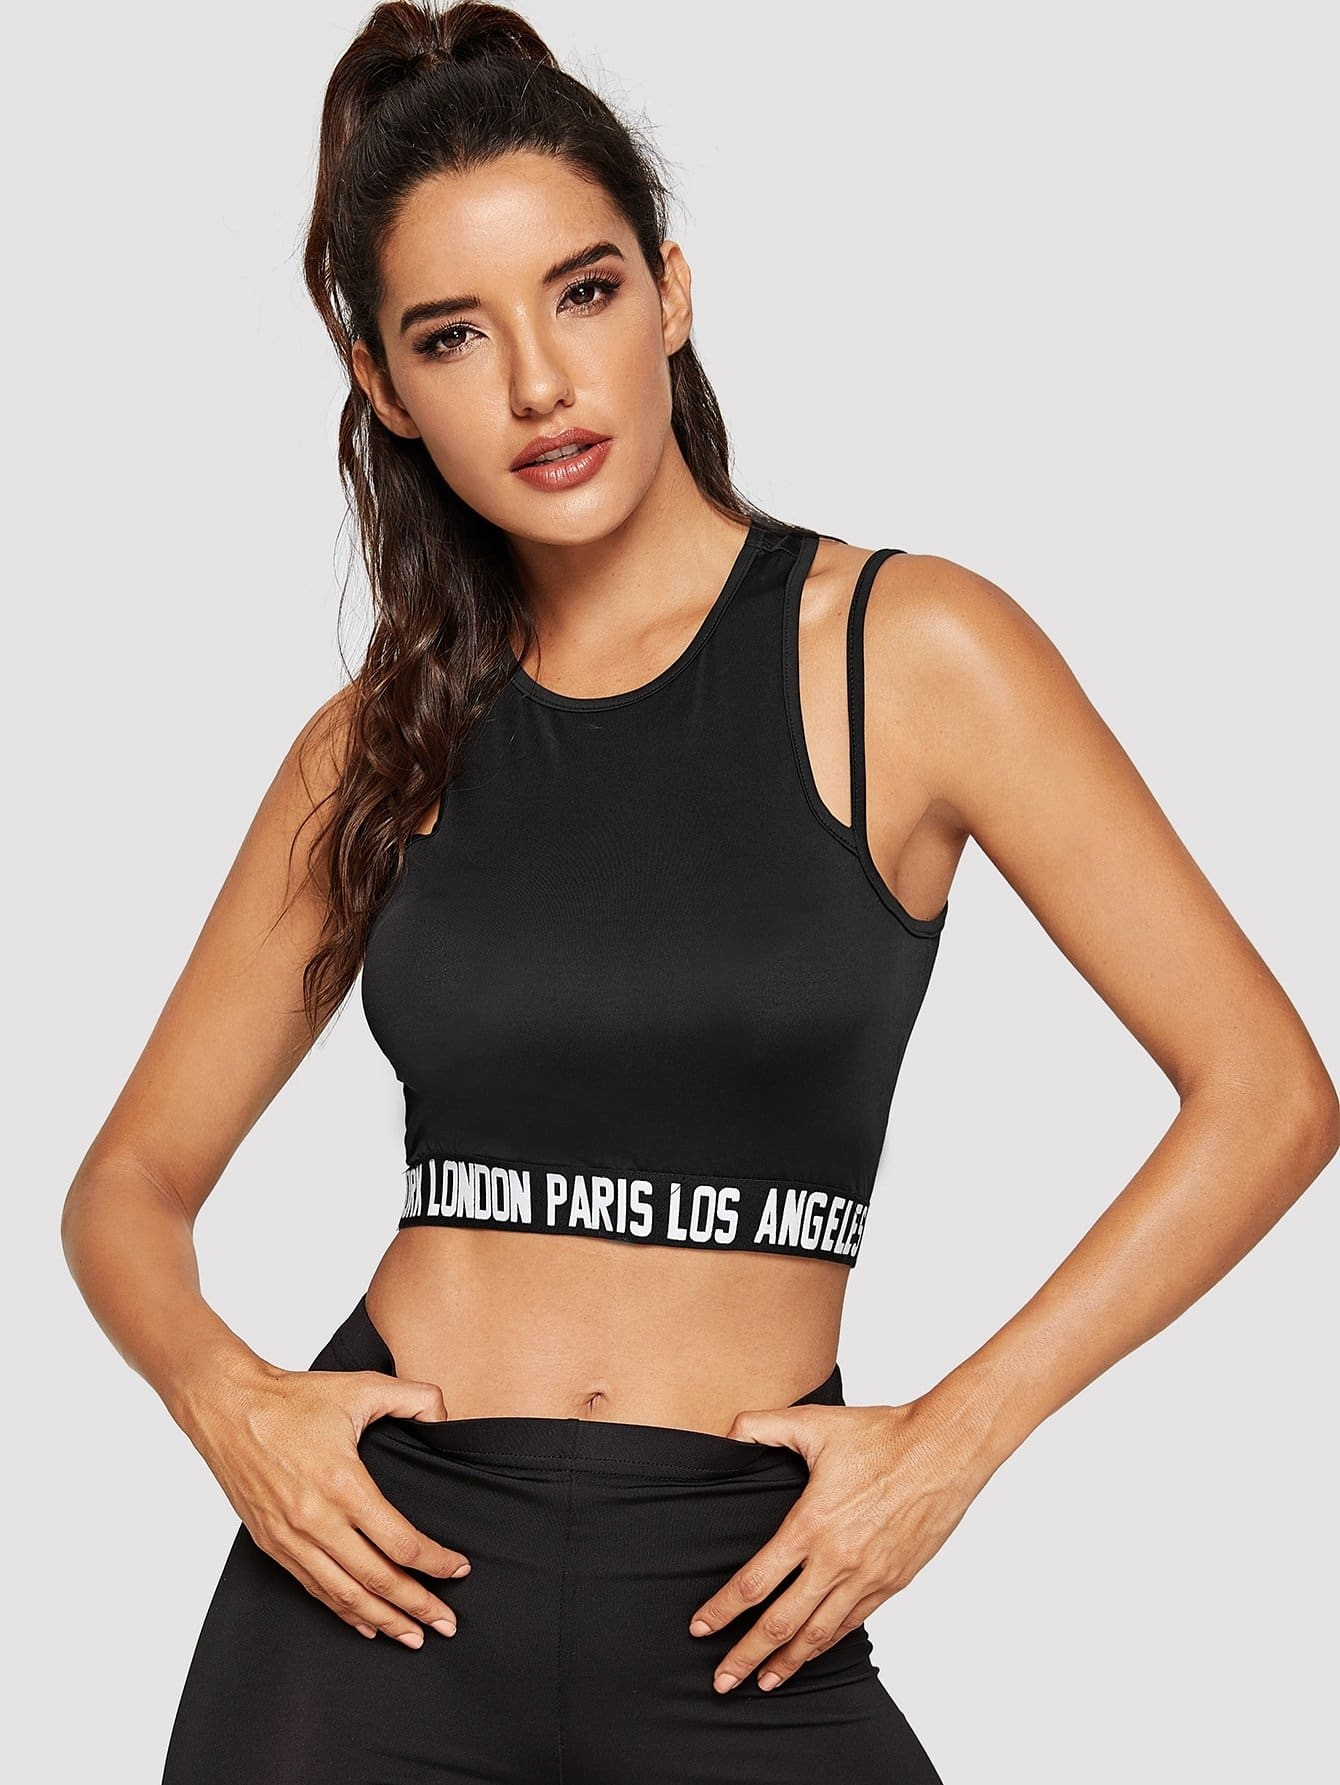 Letter Print Crop Tank Top With Strap - S / Black - Sport Bras